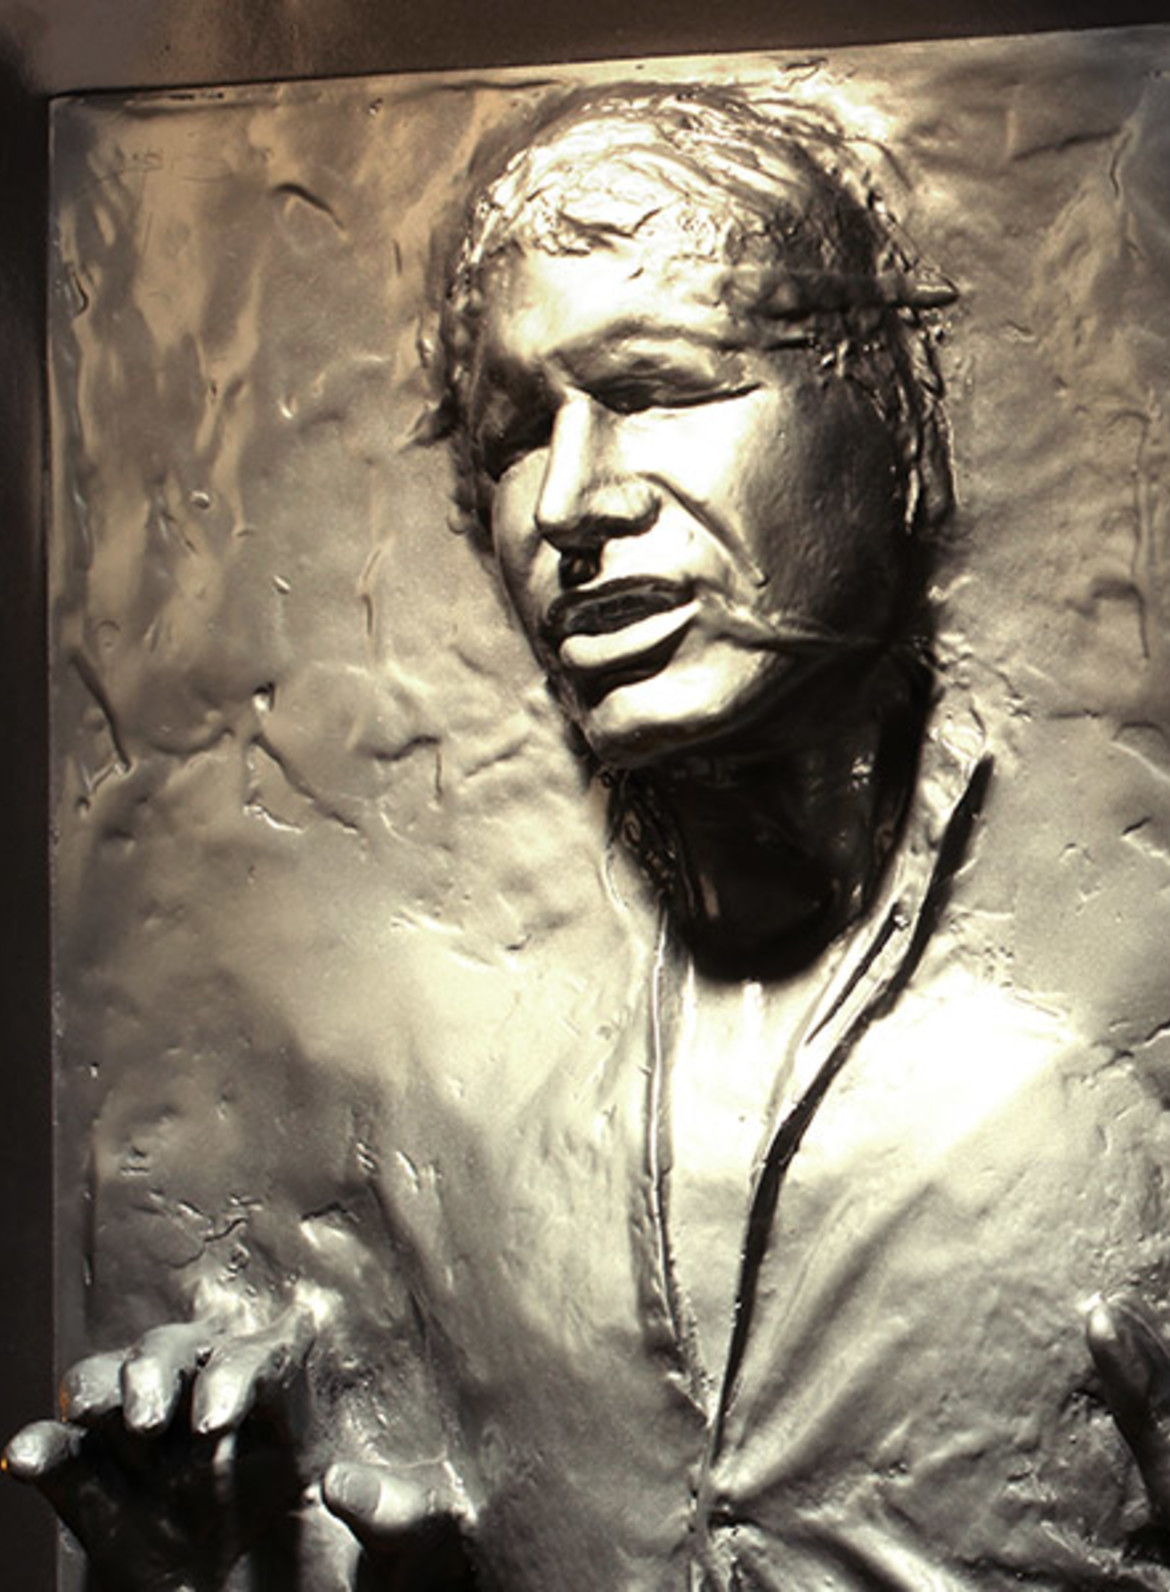 star-wars-han-solo-in-carbonite-life-size-figure-feature-400304-1.jpg